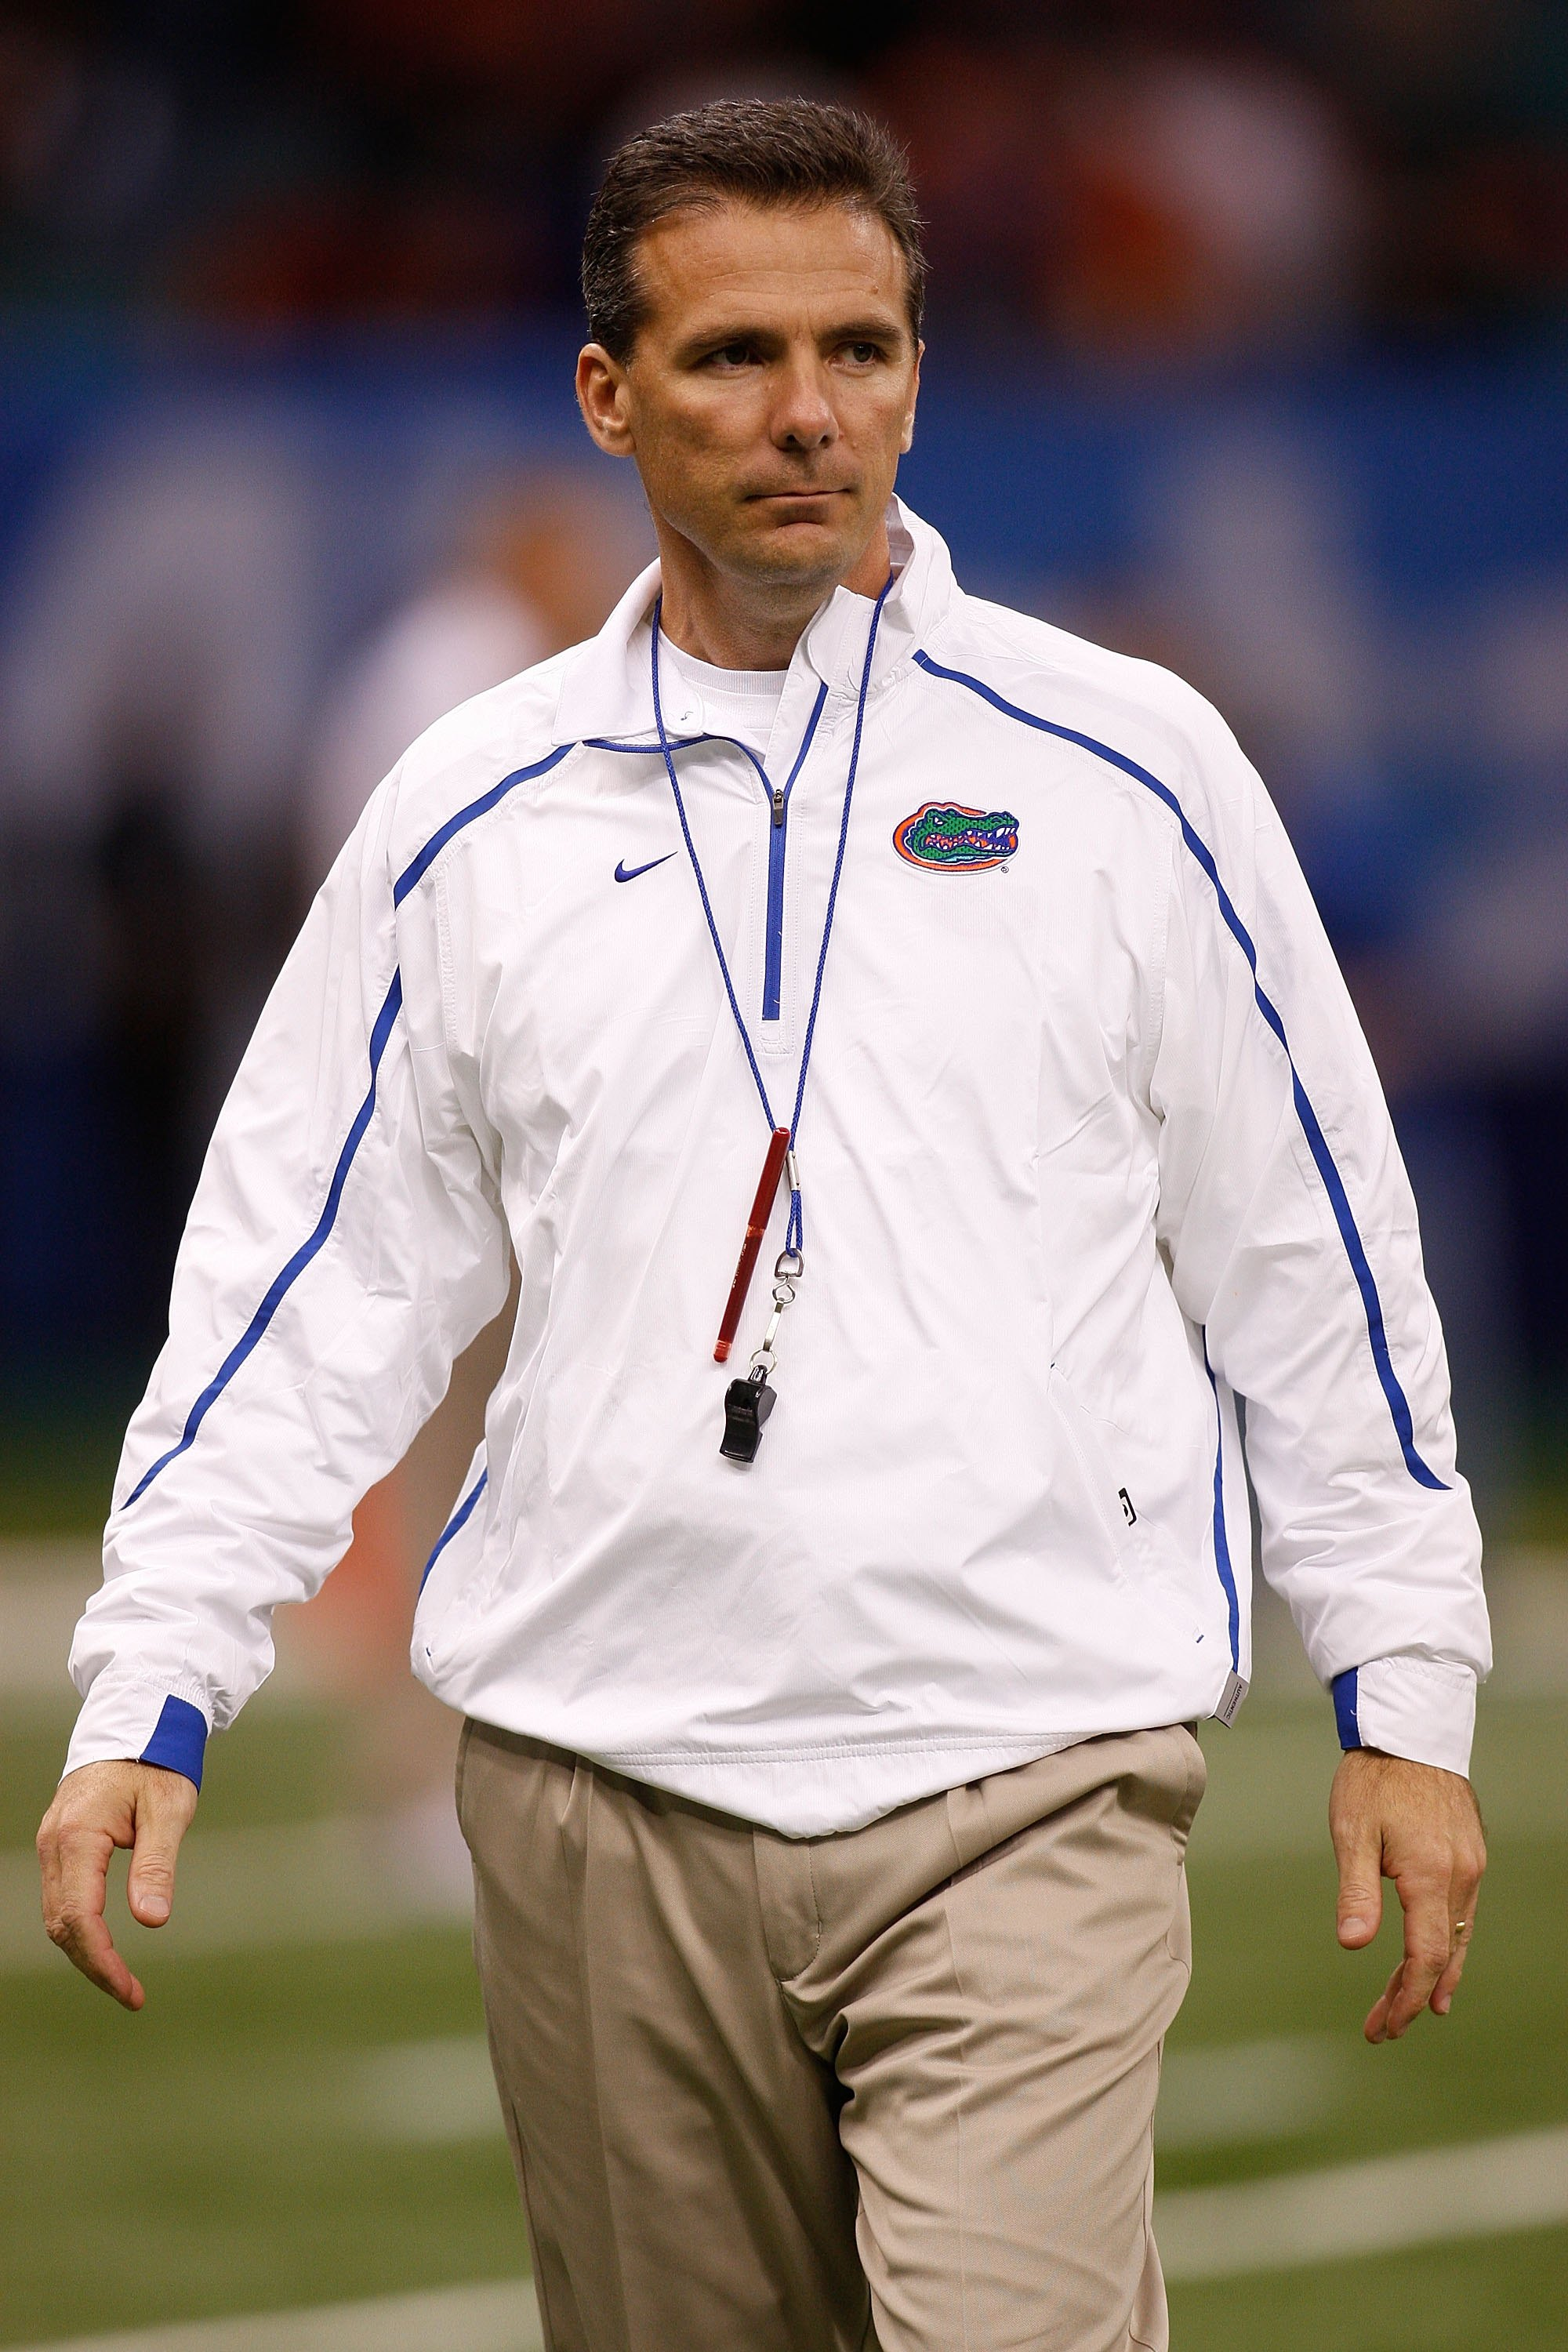 NEW ORLEANS - JANUARY 01:  Head coach Urban Meyer of the Florida Gators watches his team warm up before playing the Cincinnati Bearcats during the Allstate Sugar Bowl at the Louisana Superdome on January 1, 2010 in New Orleans, Louisiana.  (Photo by Chris